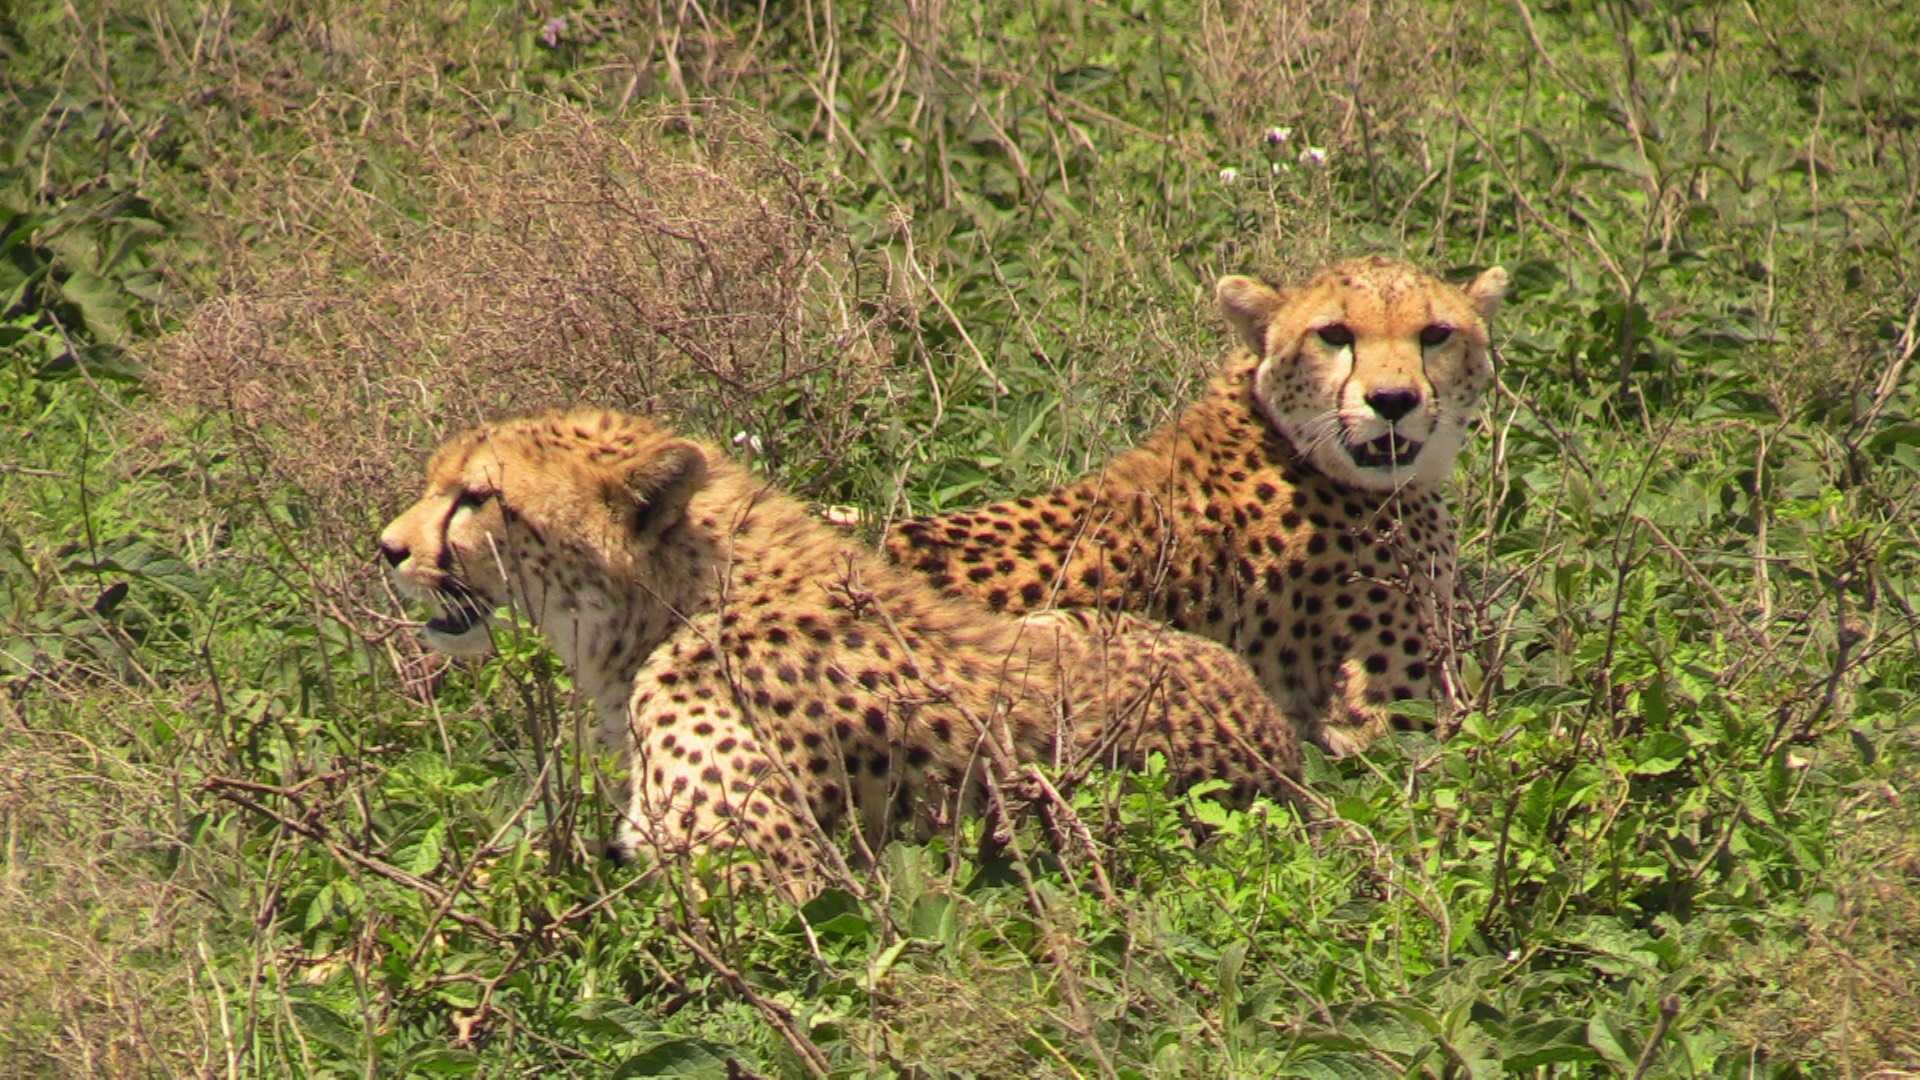 Two cheetah siblings, on their own out in the wilds of the Serengeti.   This photo was taken just moments before their successful chase of a young gazelle, as discussed during the CBC radio segment.